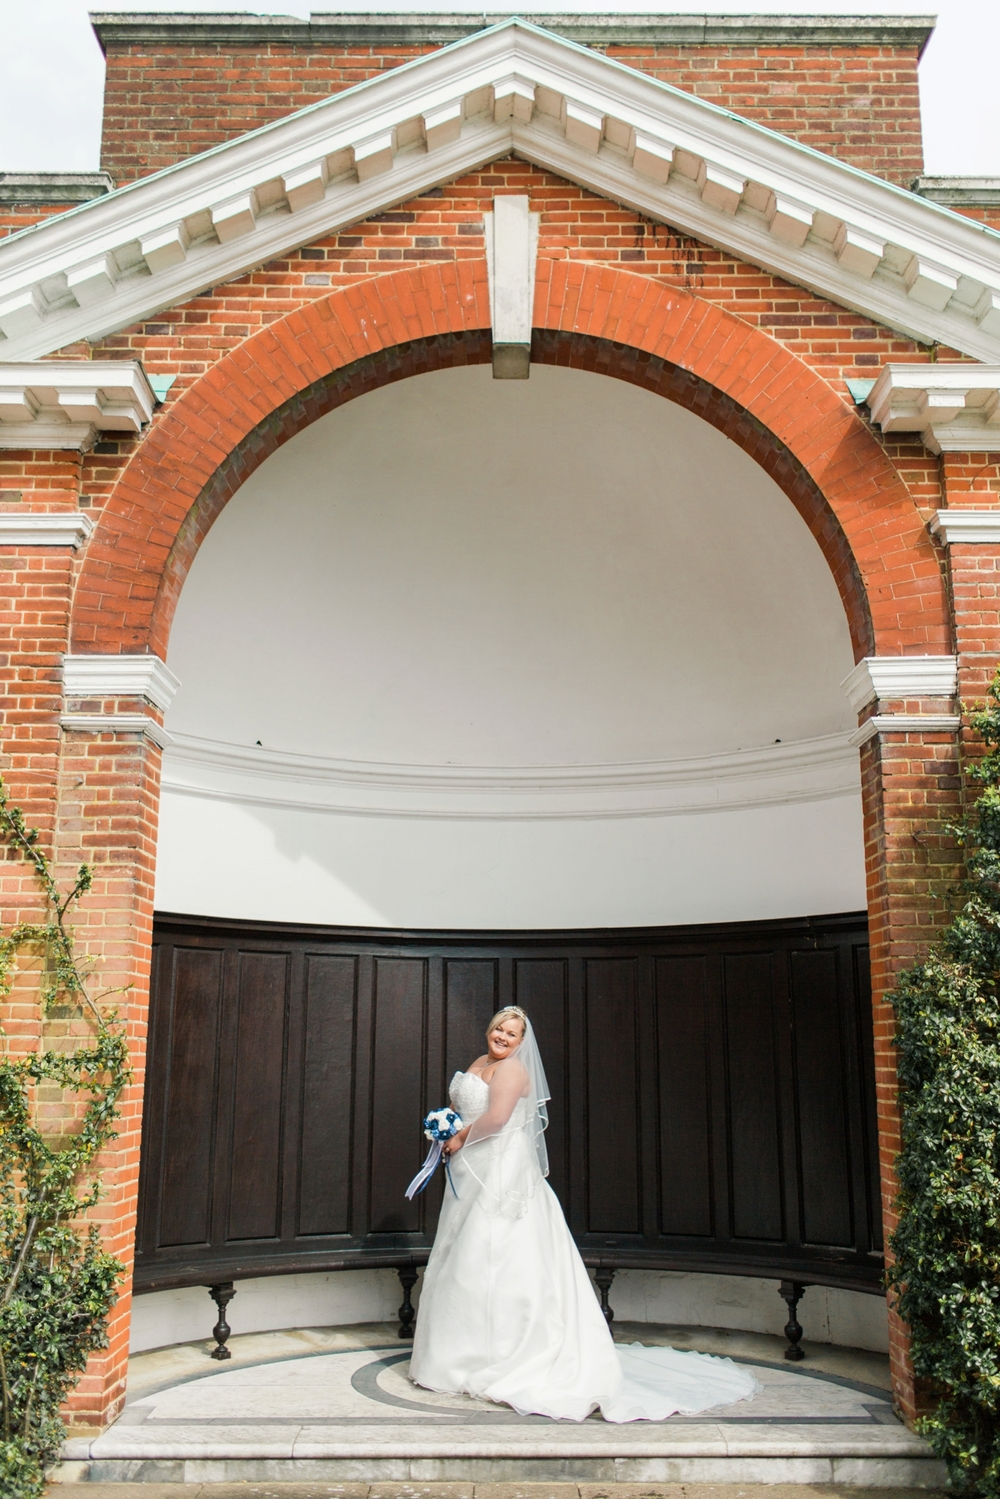 international-wedding-photographer-london-England-european-wedding-venue-chloe-luka-photography_6020.jpg